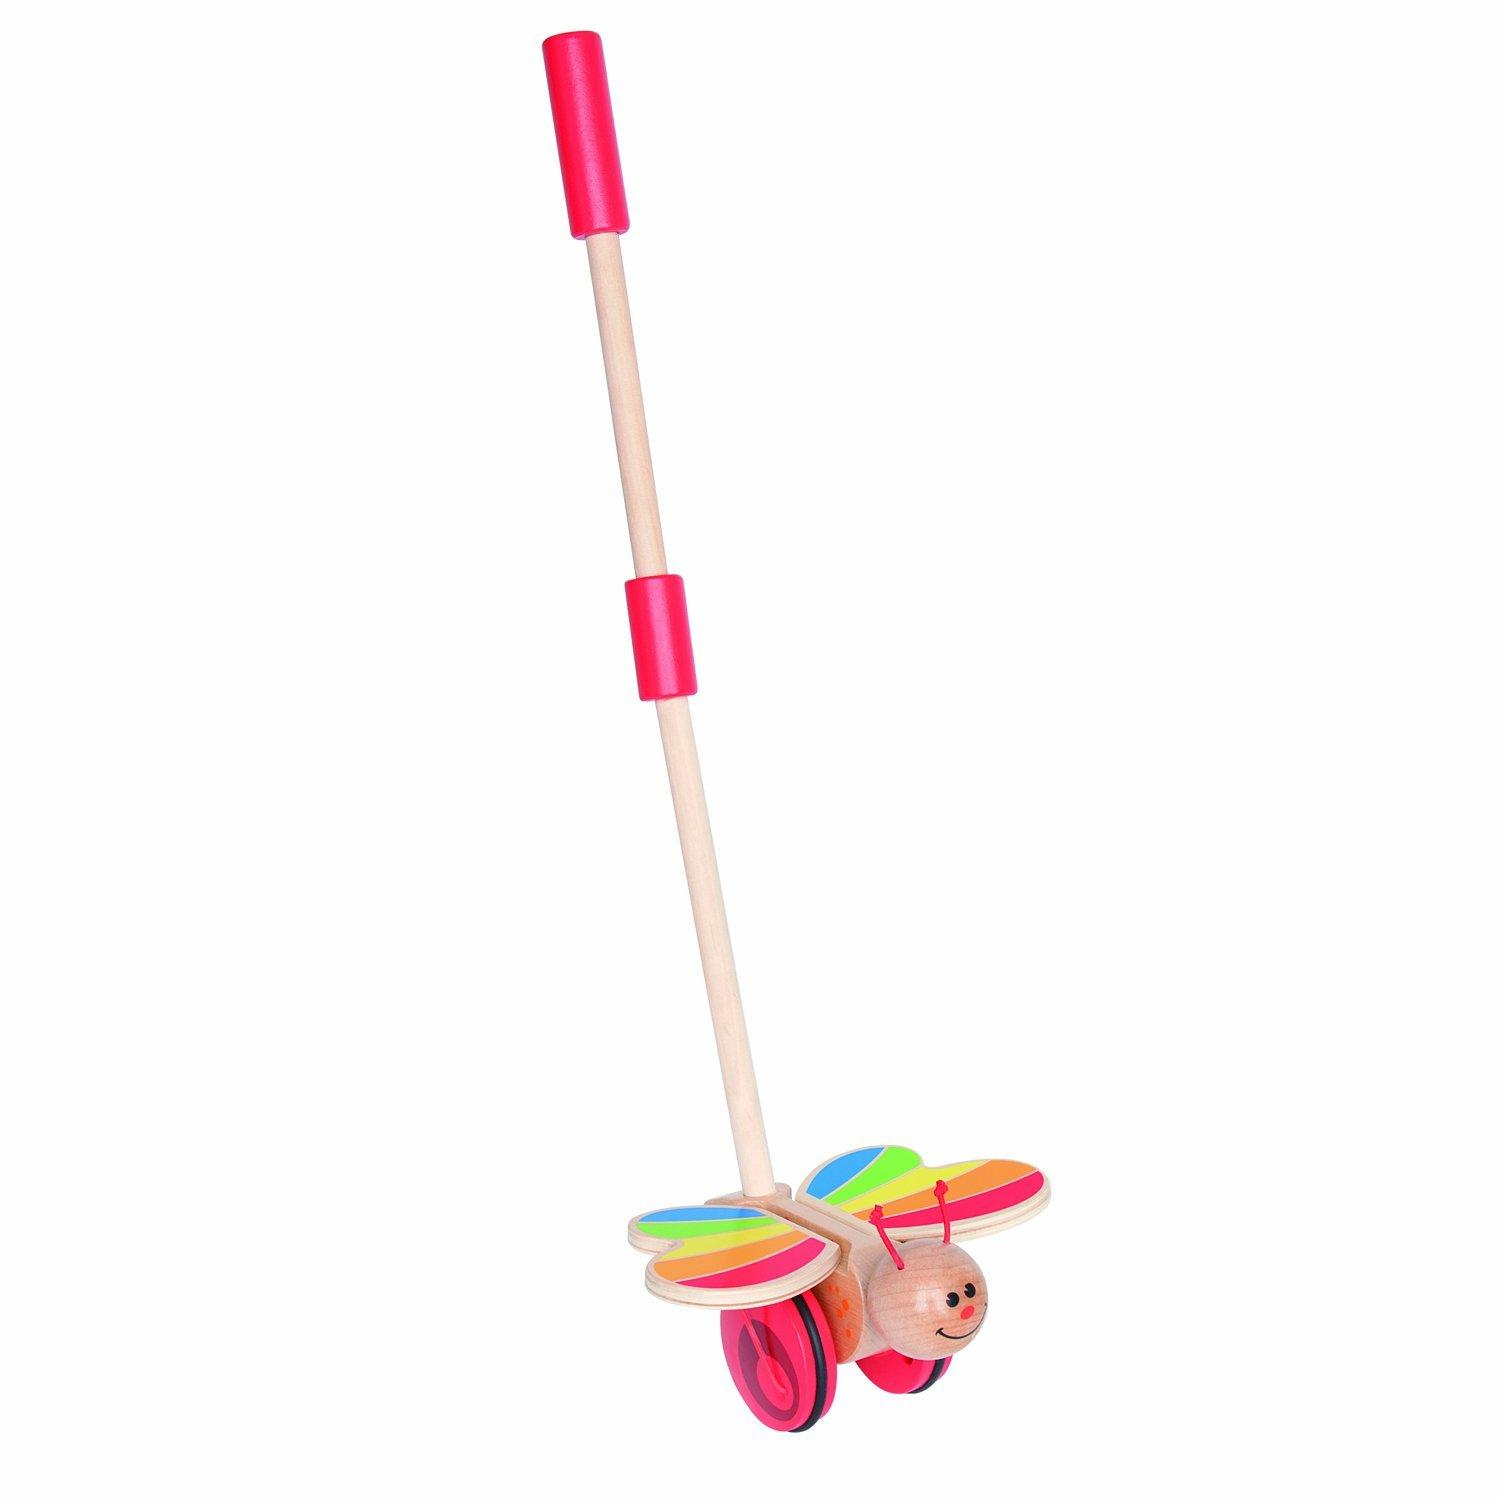 Amazon.com: Hape walk-a-long erizo bebé de madera y ...